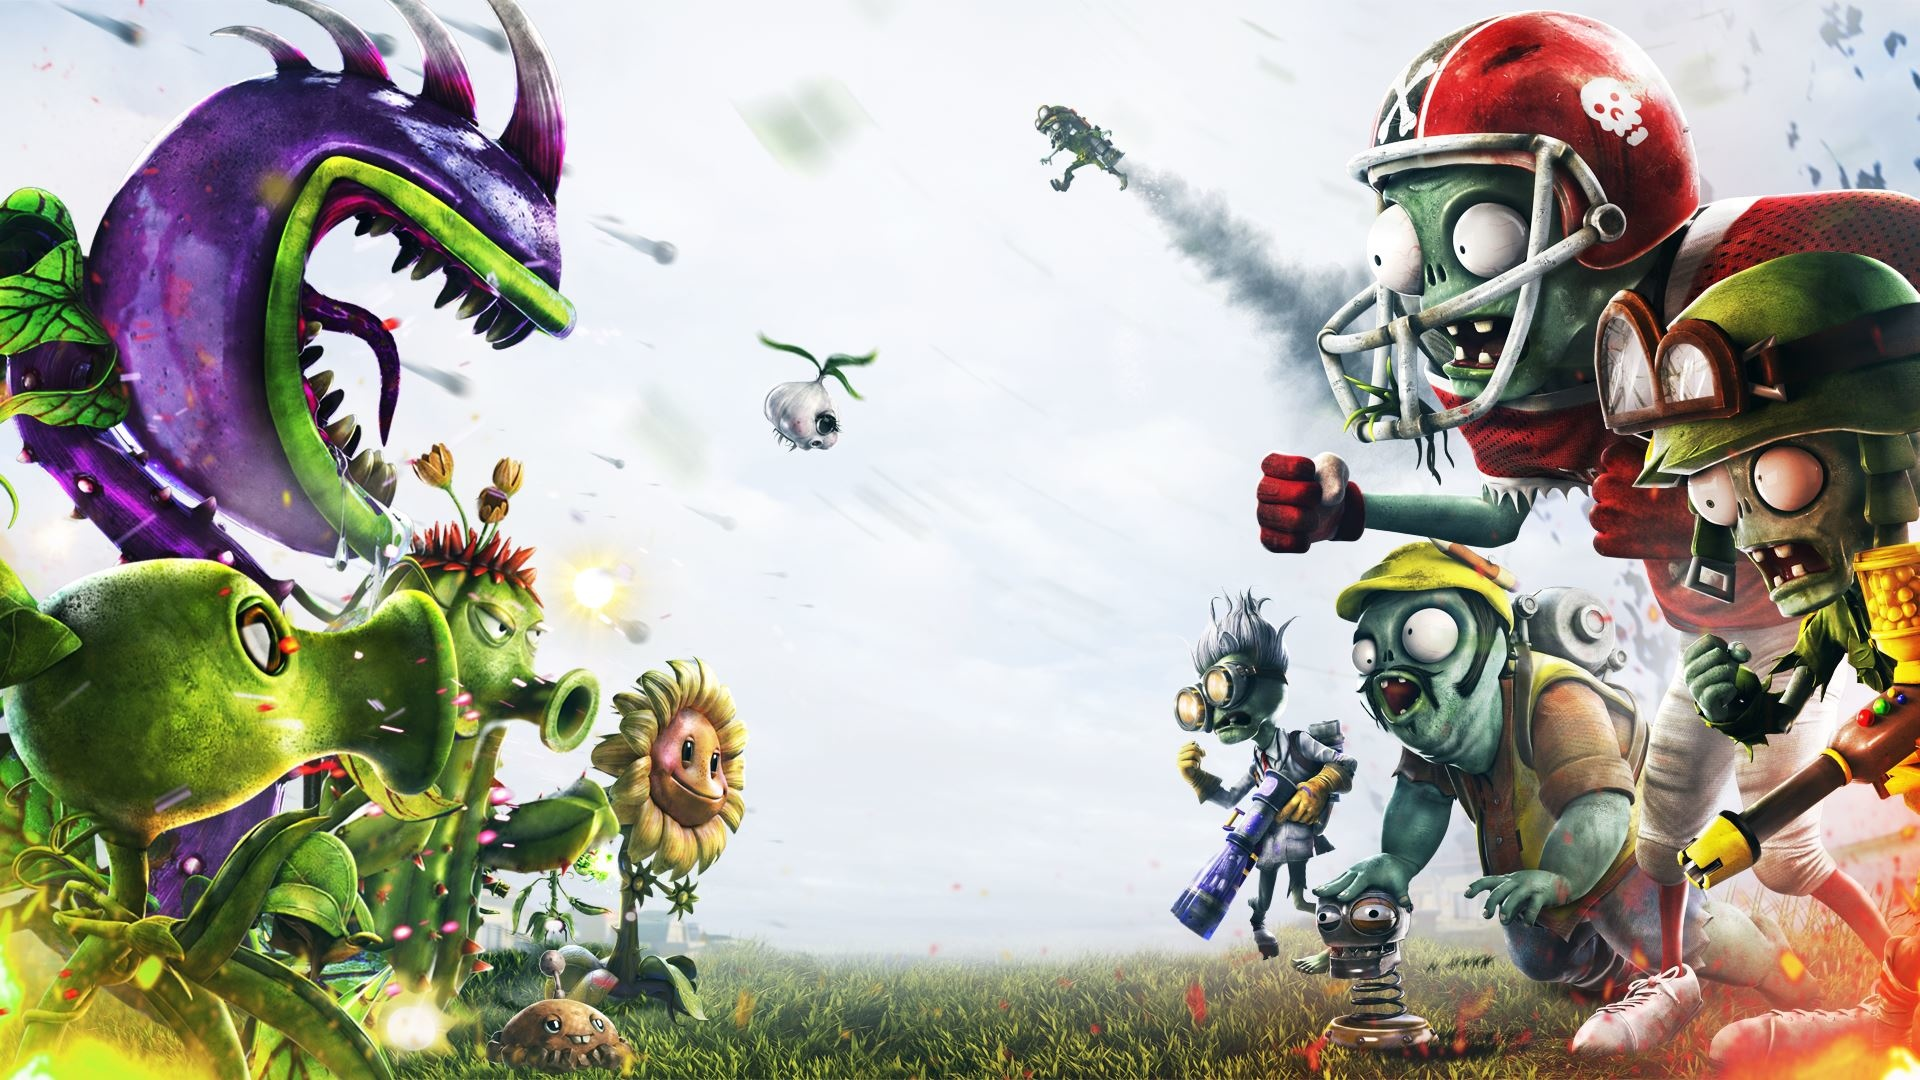 Fondos De Pantalla De Plants Vs Zombies Garden Warfare 1 Y 2 Wallpapers